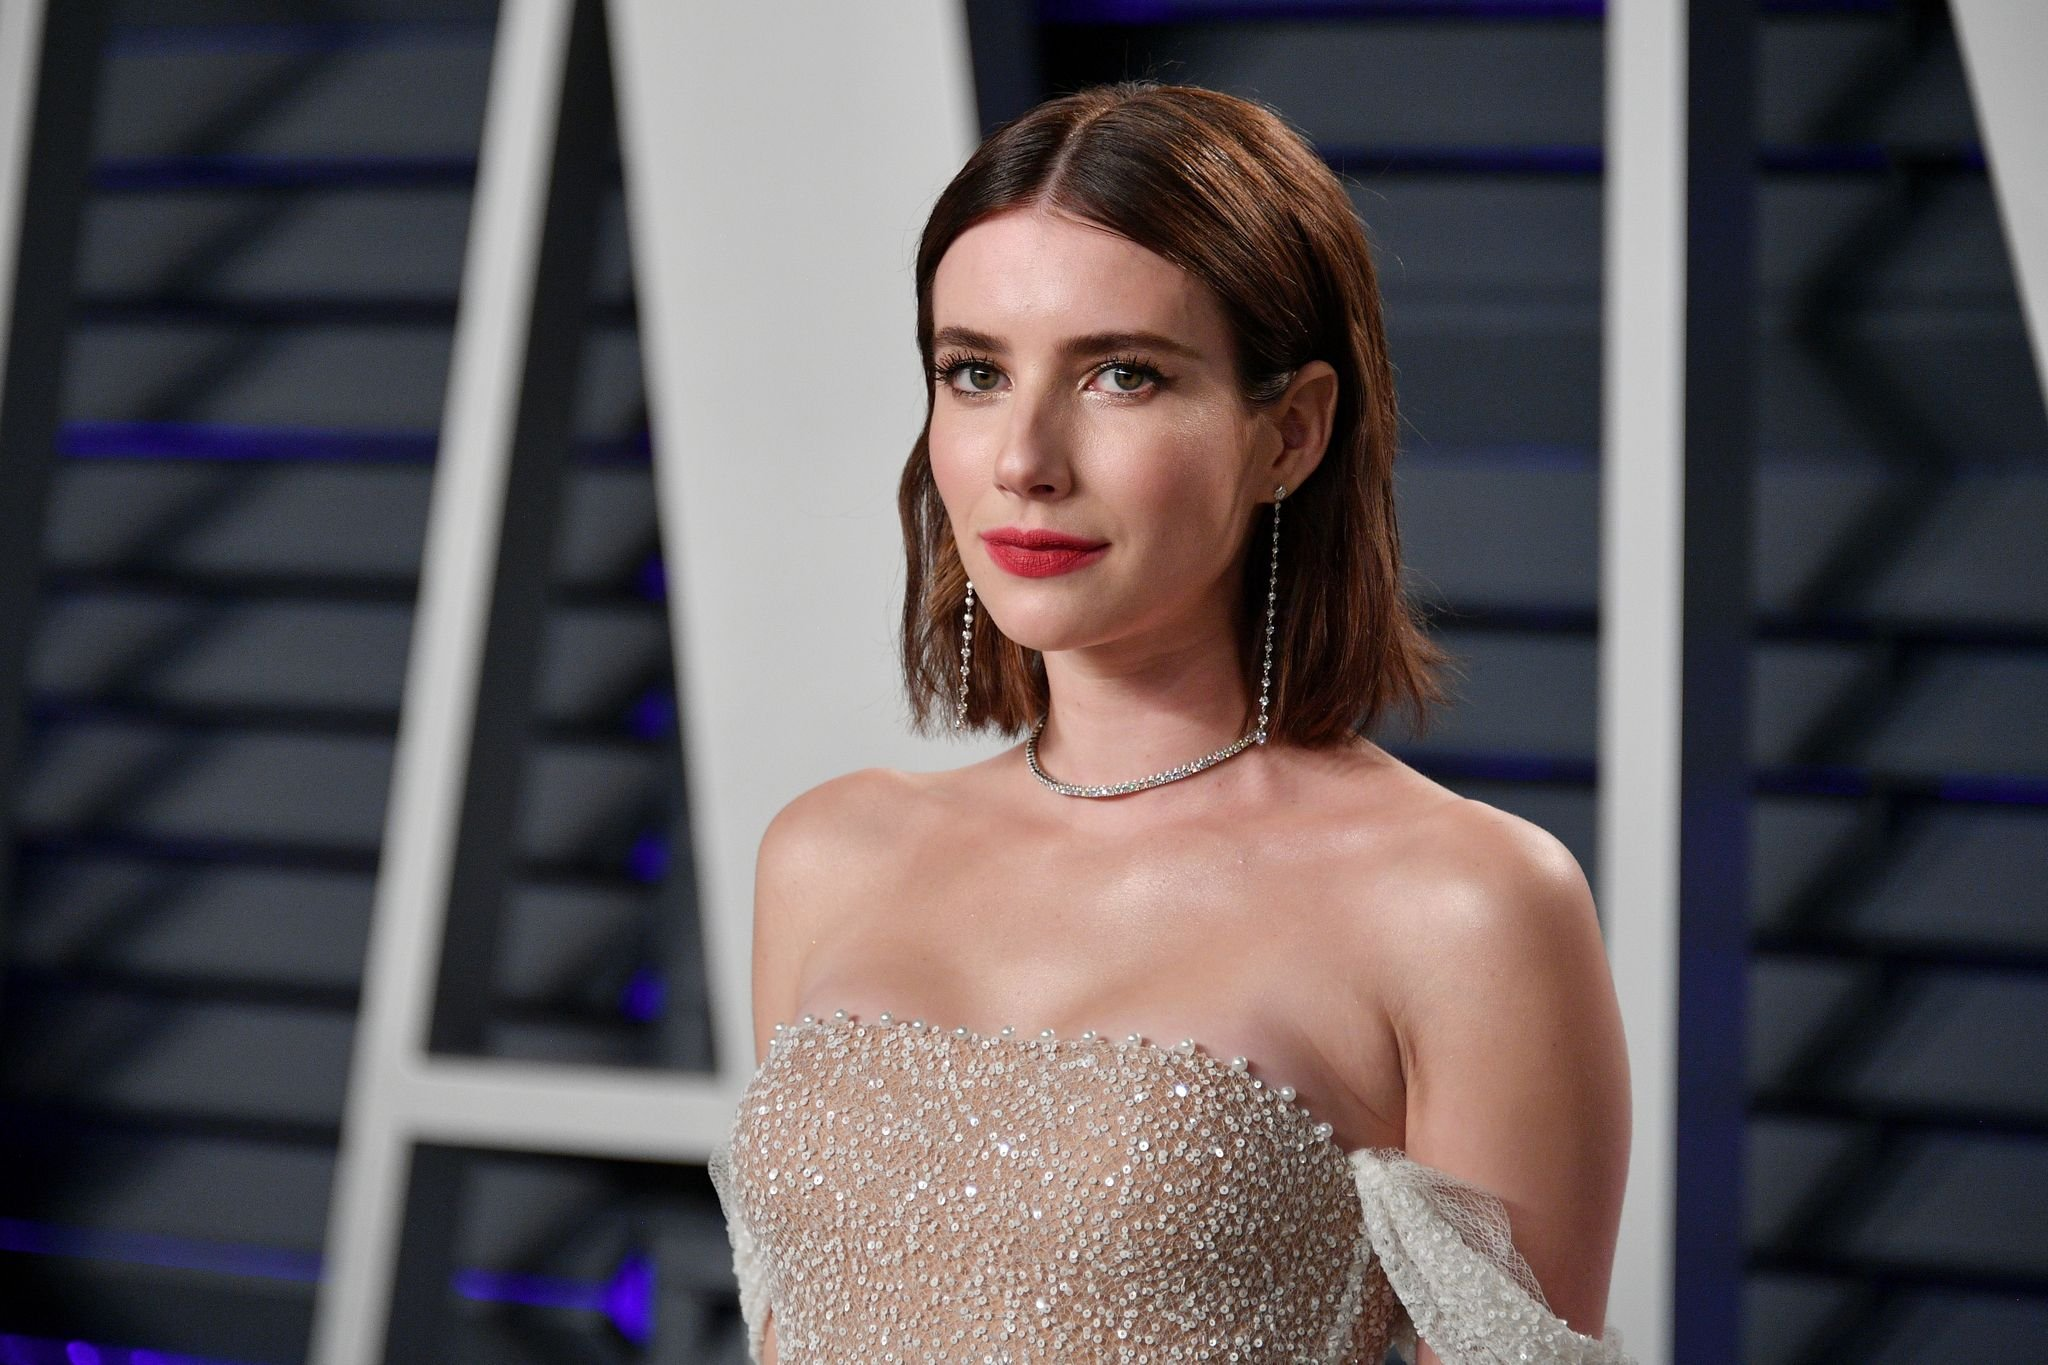 Emma Roberts attends the 2019 Vanity Fair Oscar Party / Getty Images